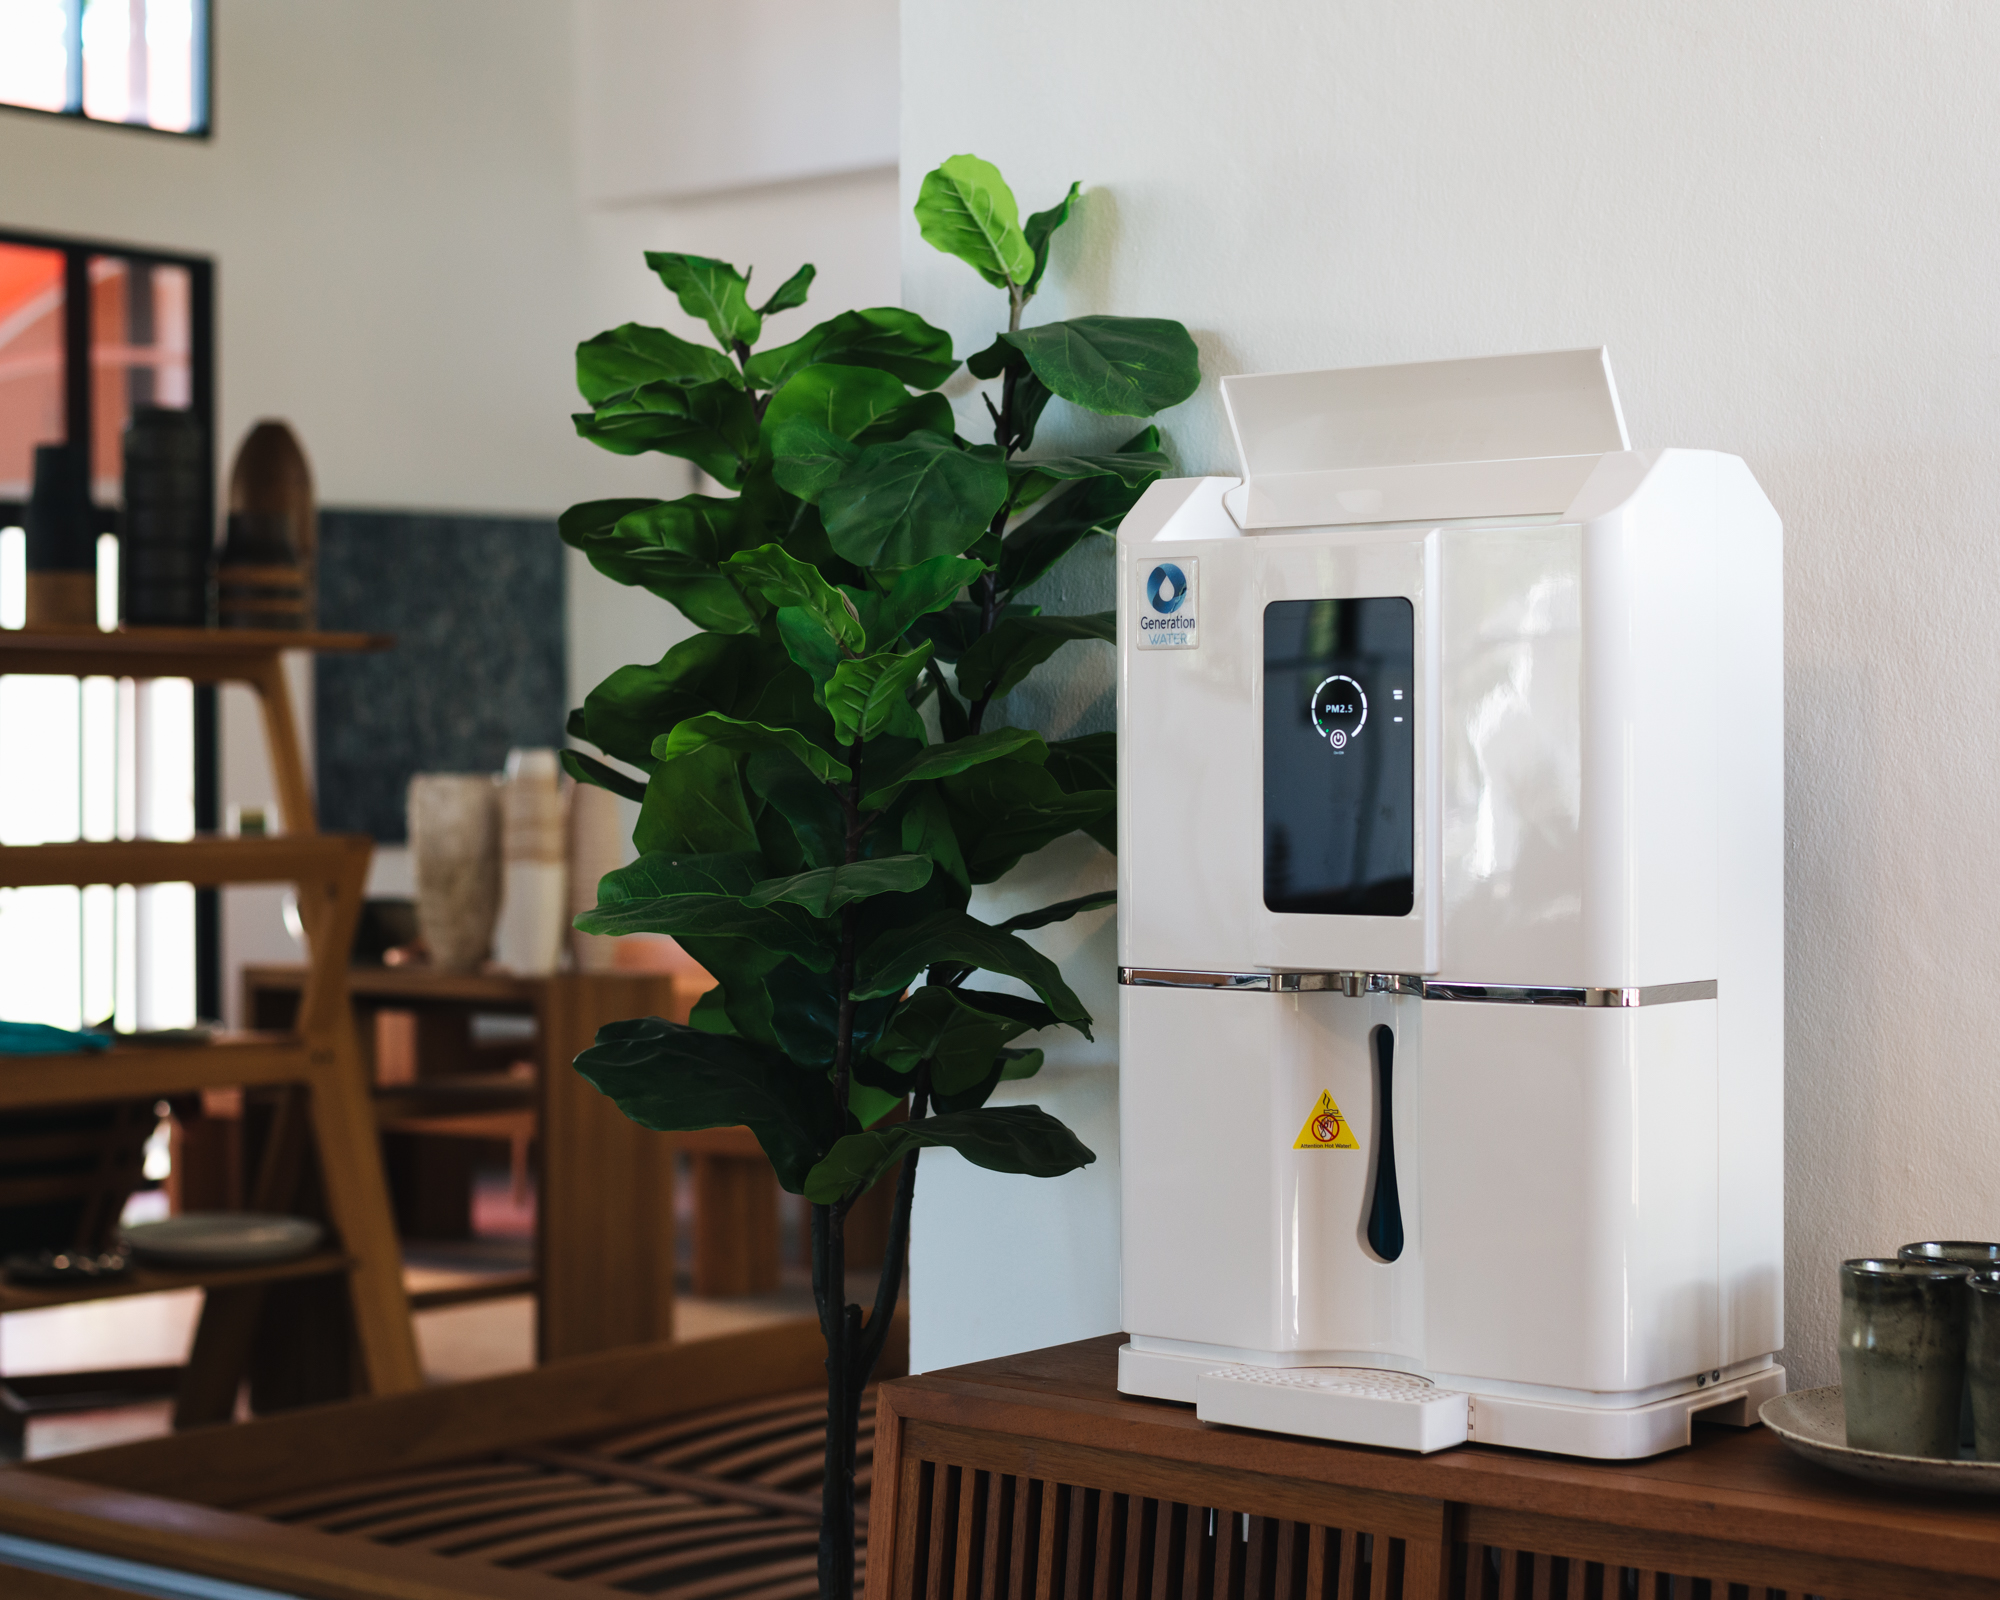 Aero 20 - Ideal for home and office use